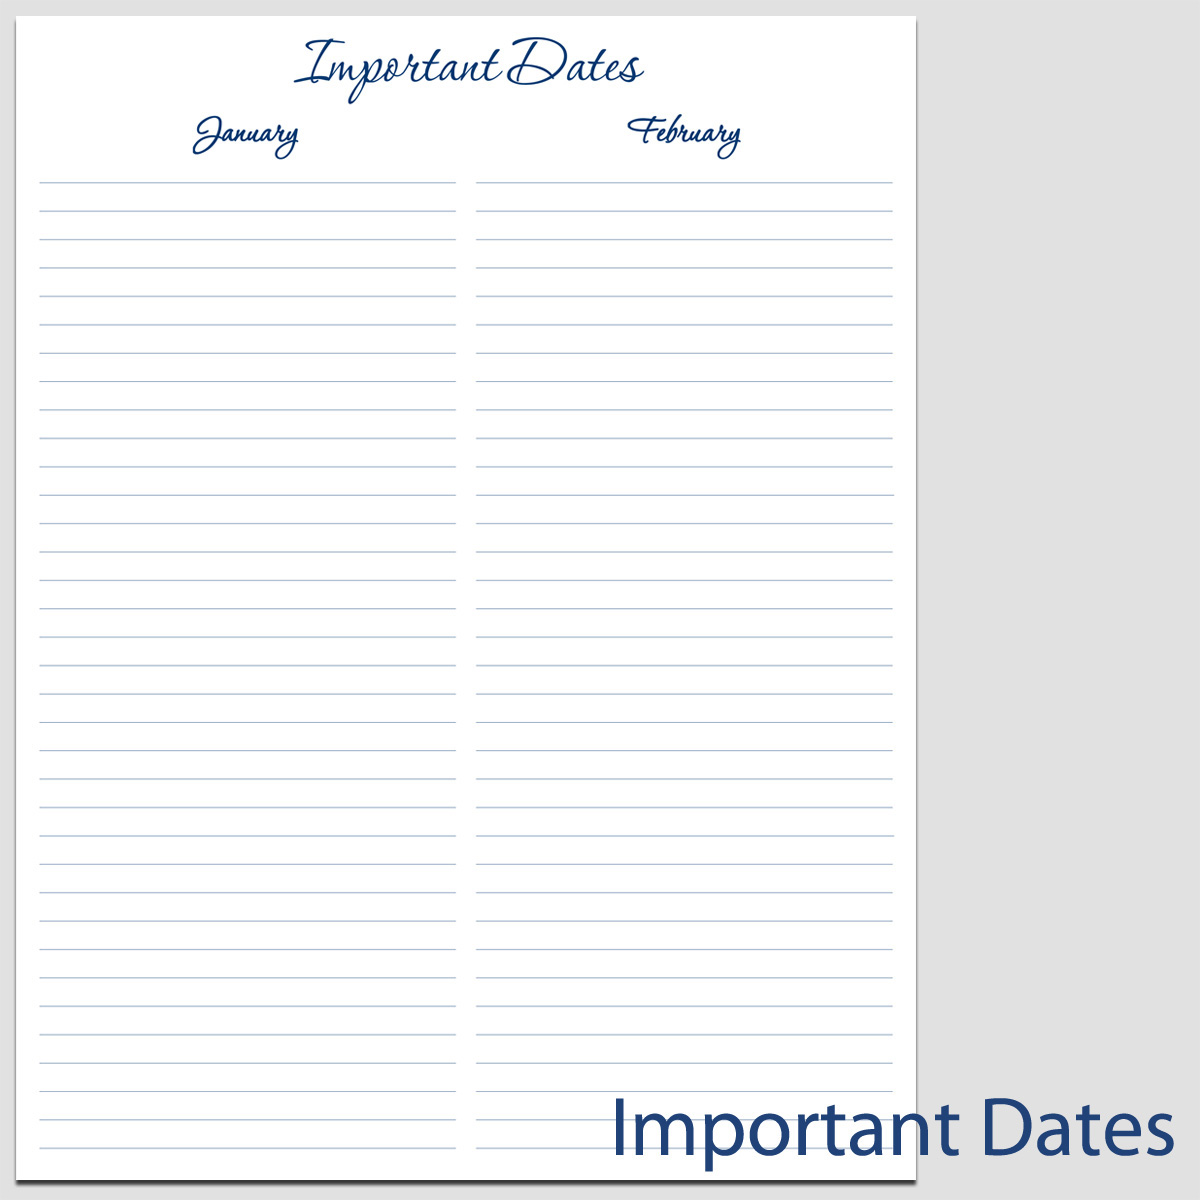 Printable Important Dates In Portrait 4 Forms 8 1 2 X